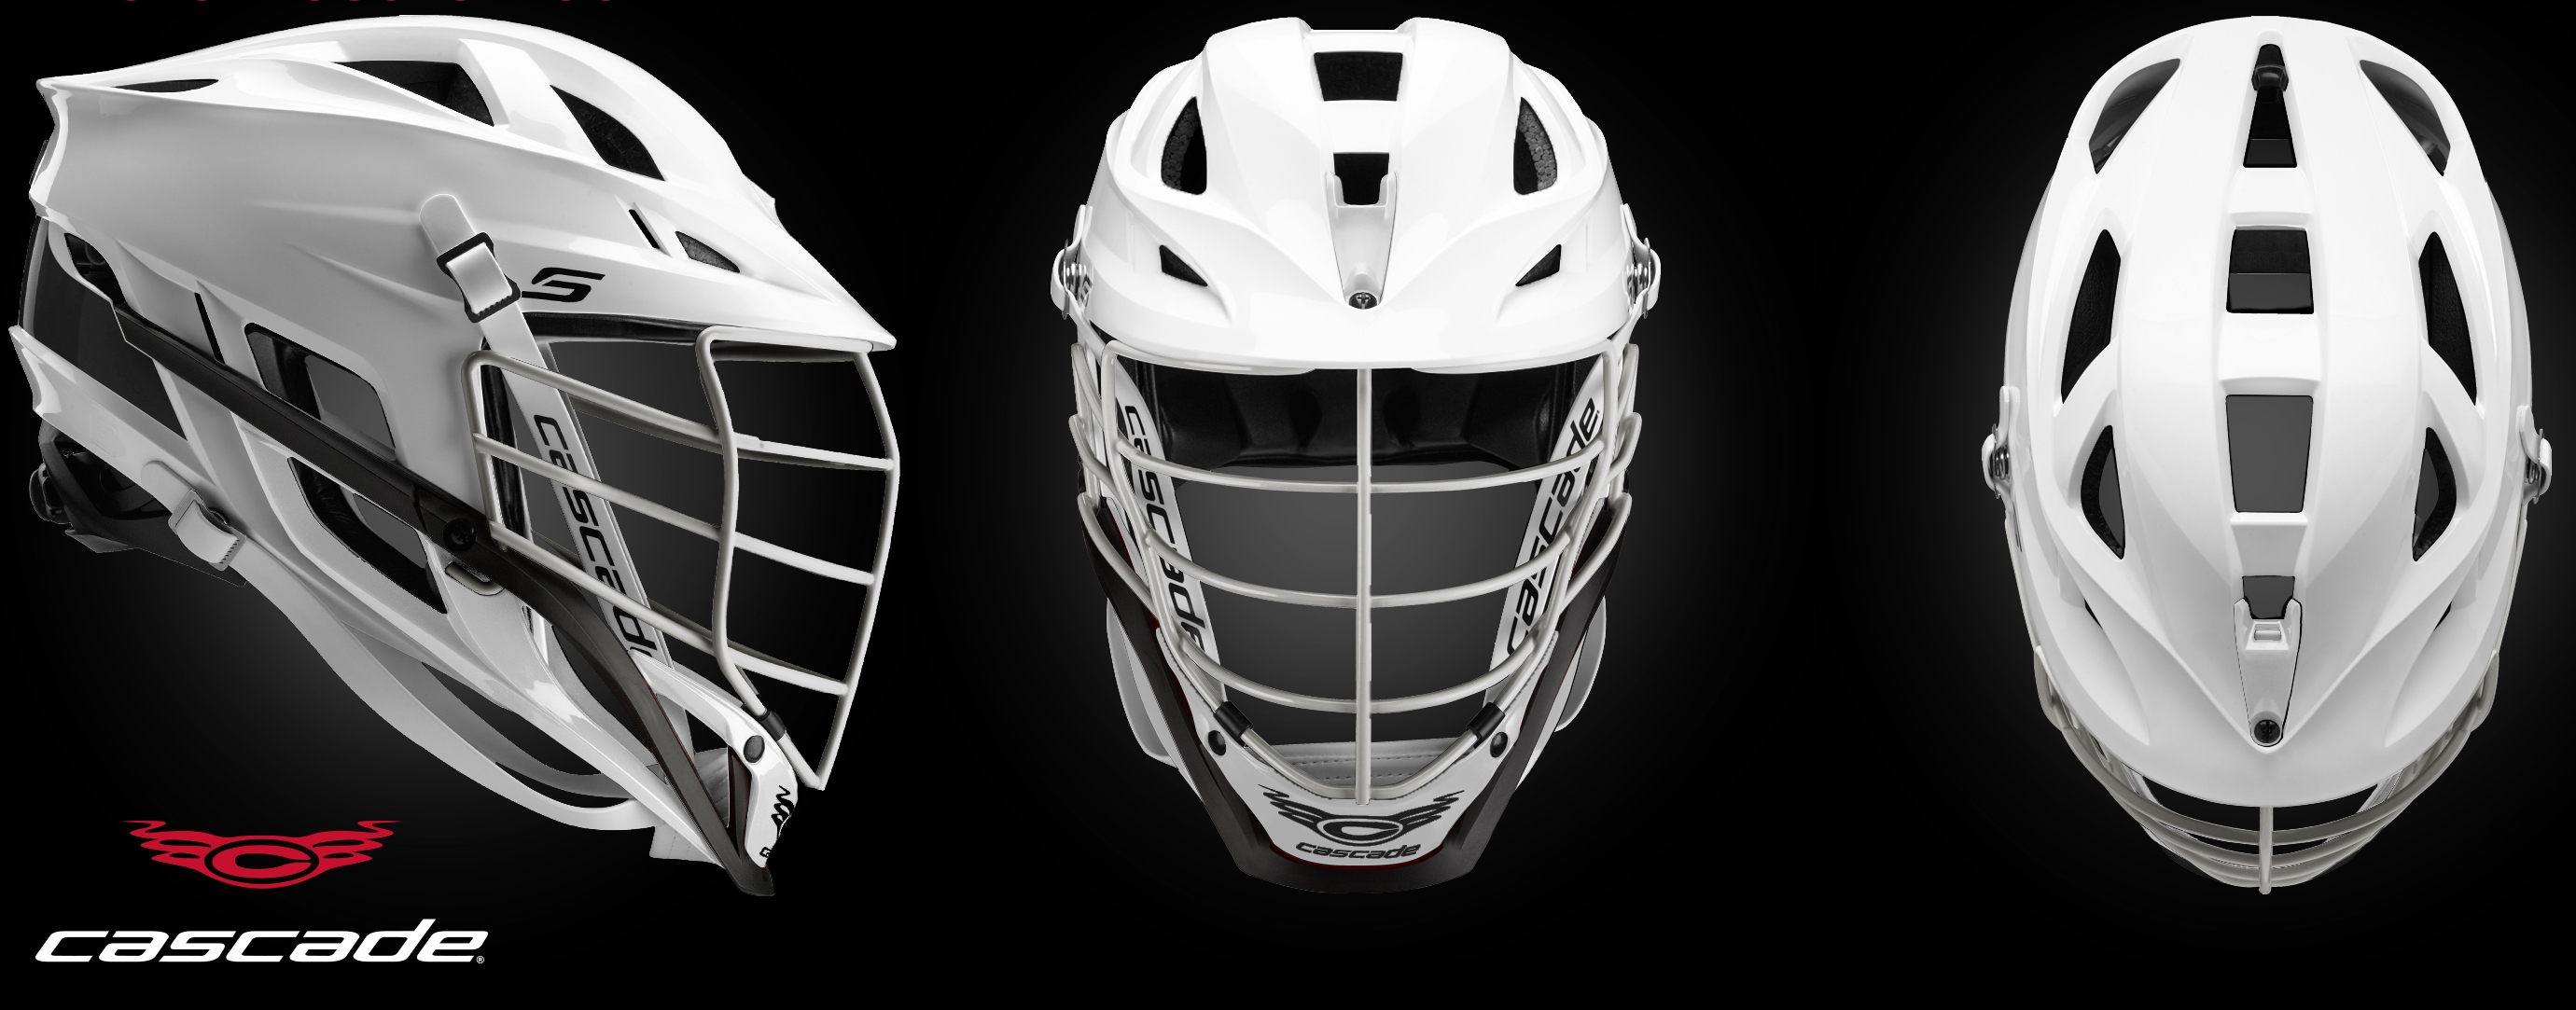 Cascade helmet all white